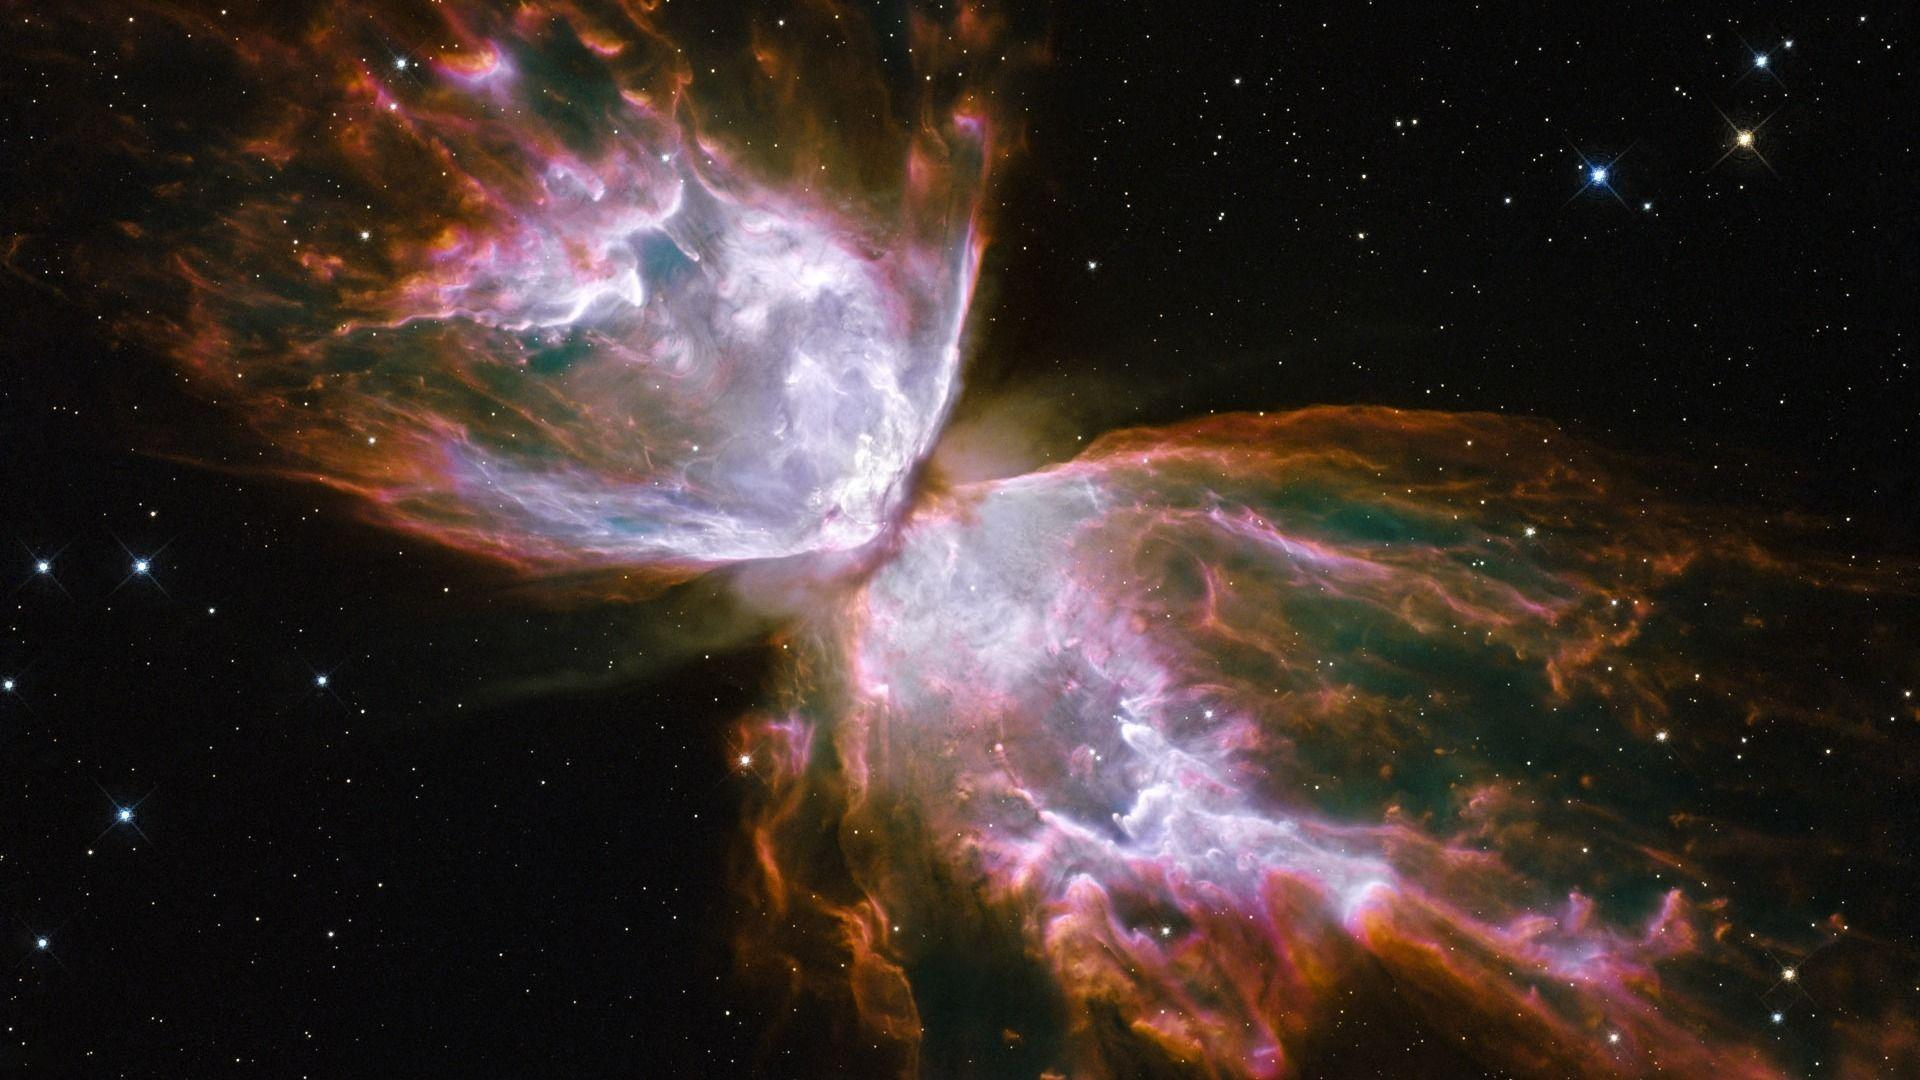 Hubble Wallpapers 1920x1080 1920x1080